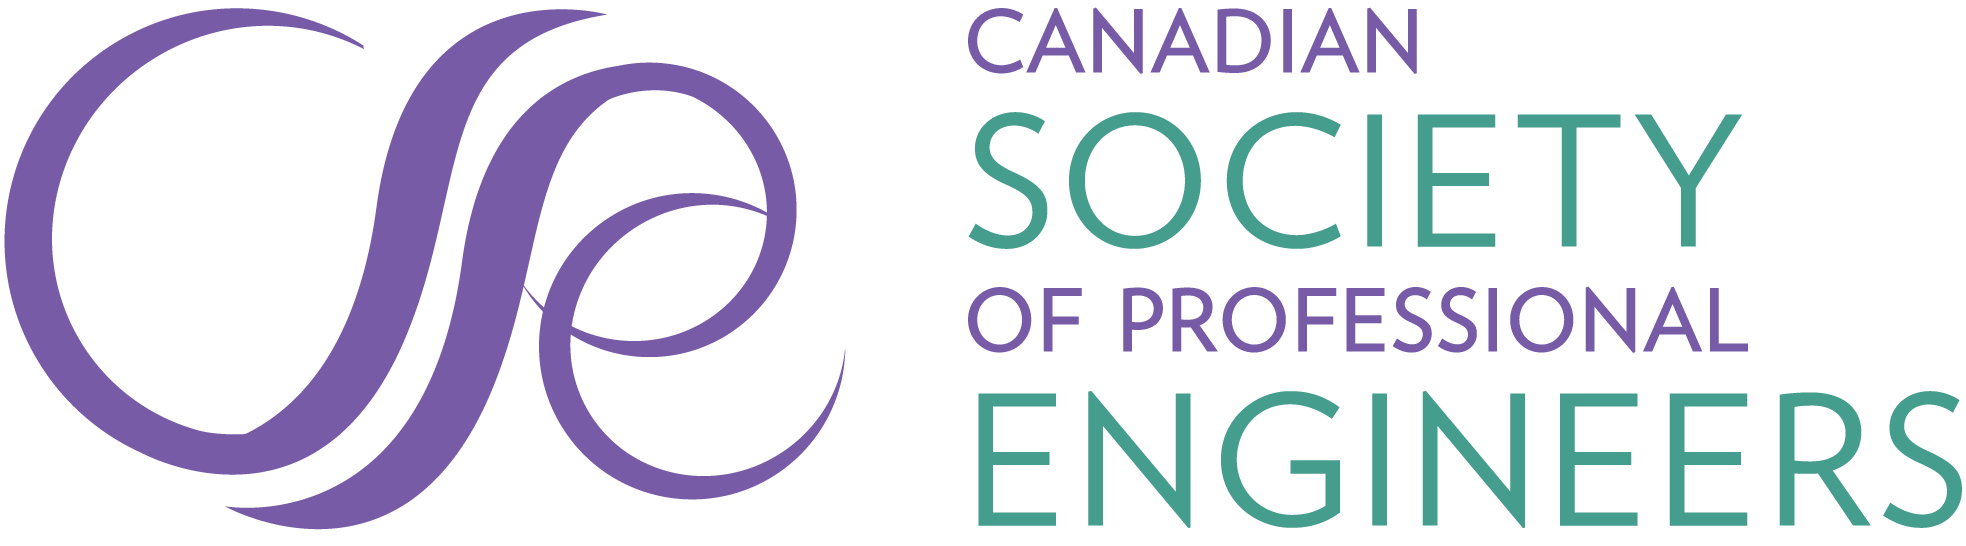 Canadian Society of Professional Engineers